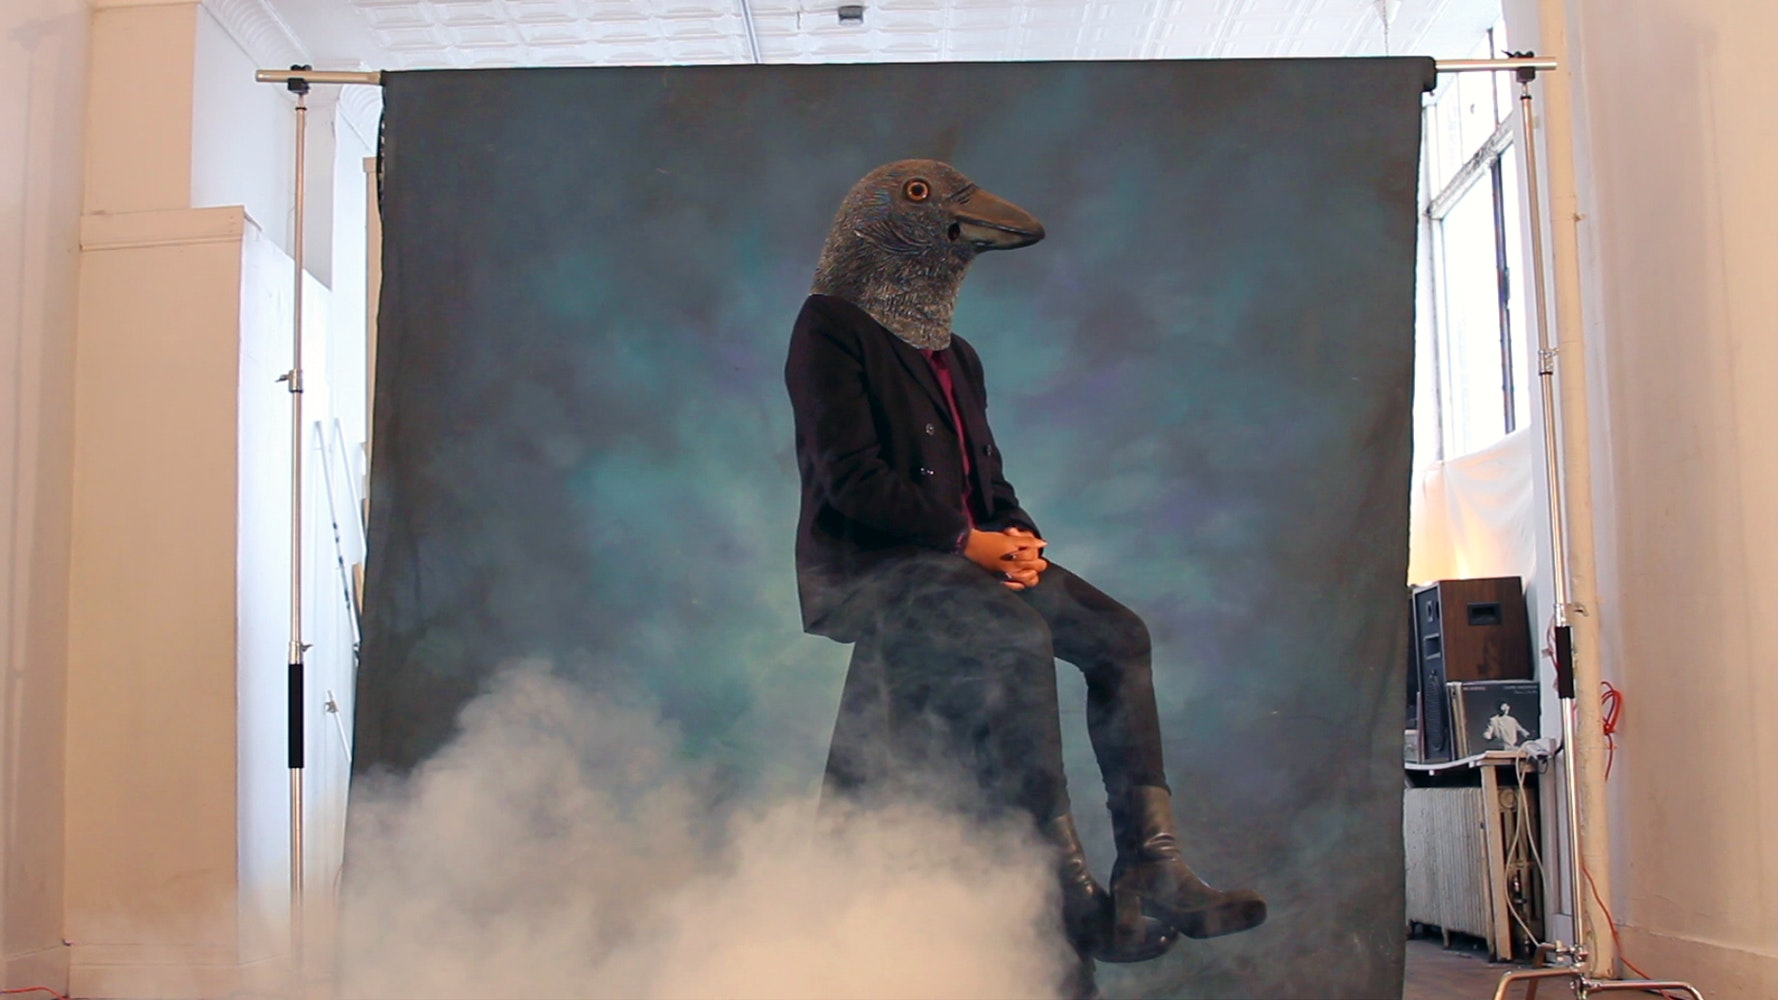 Image of person wearing crow mask with smoke in the foreground